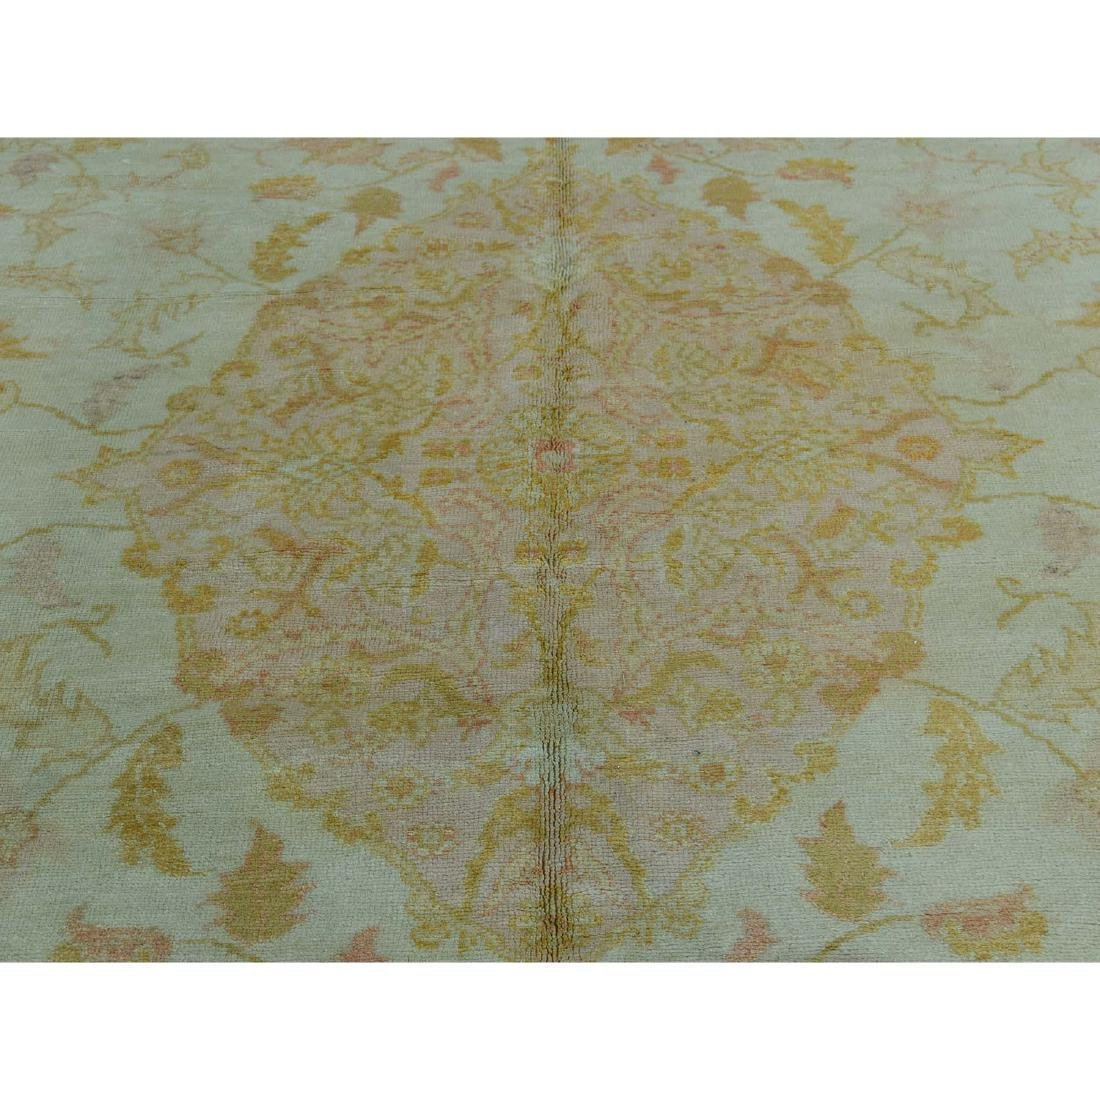 Hand-Knotted Antique Turkish Oushak Soft Colors - 8